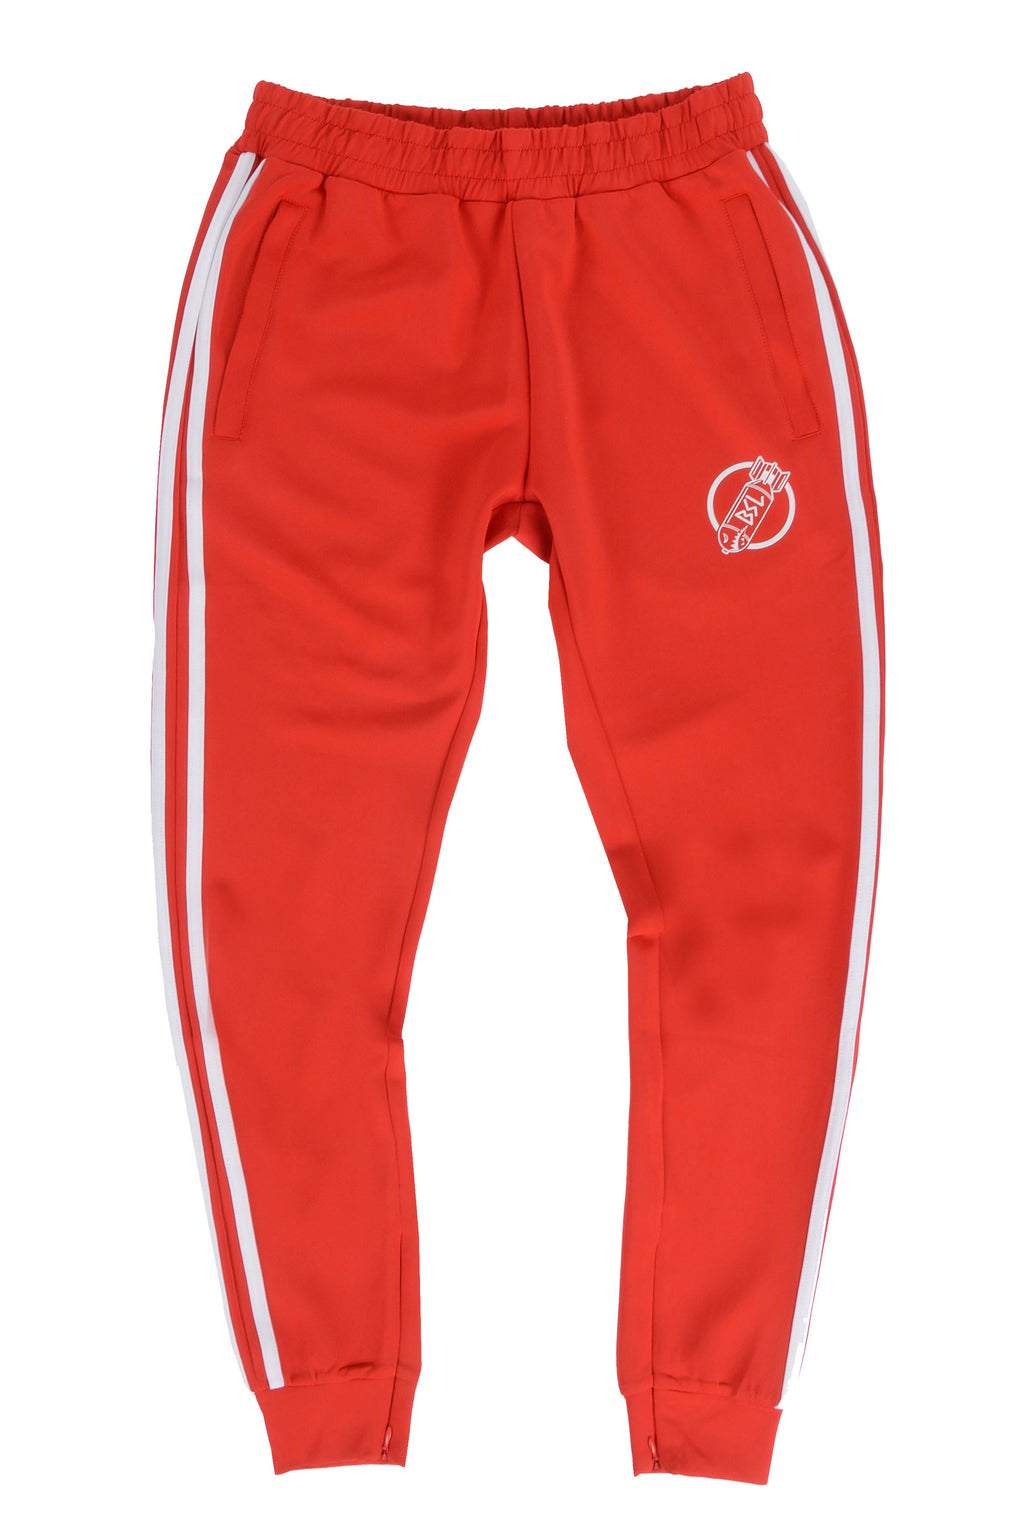 BSL Track Pants- BSL202 - Red